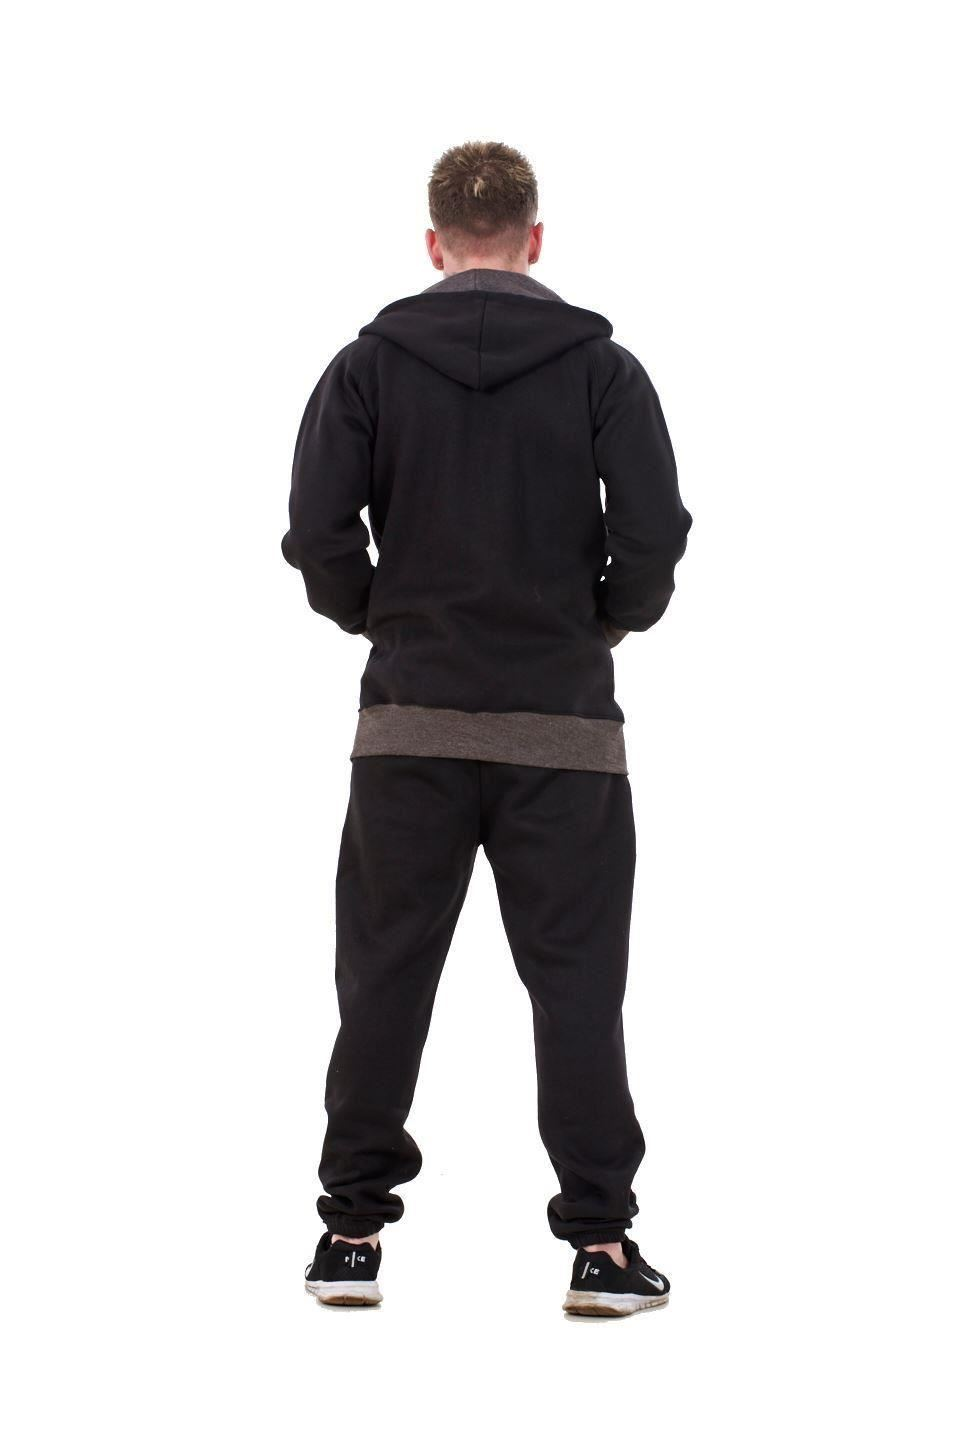 New-Mens-Tracksuit-Branded-Fleece-Hooded-Zipper-Cotton-Jogging-Bottoms-S-to-XXL thumbnail 3